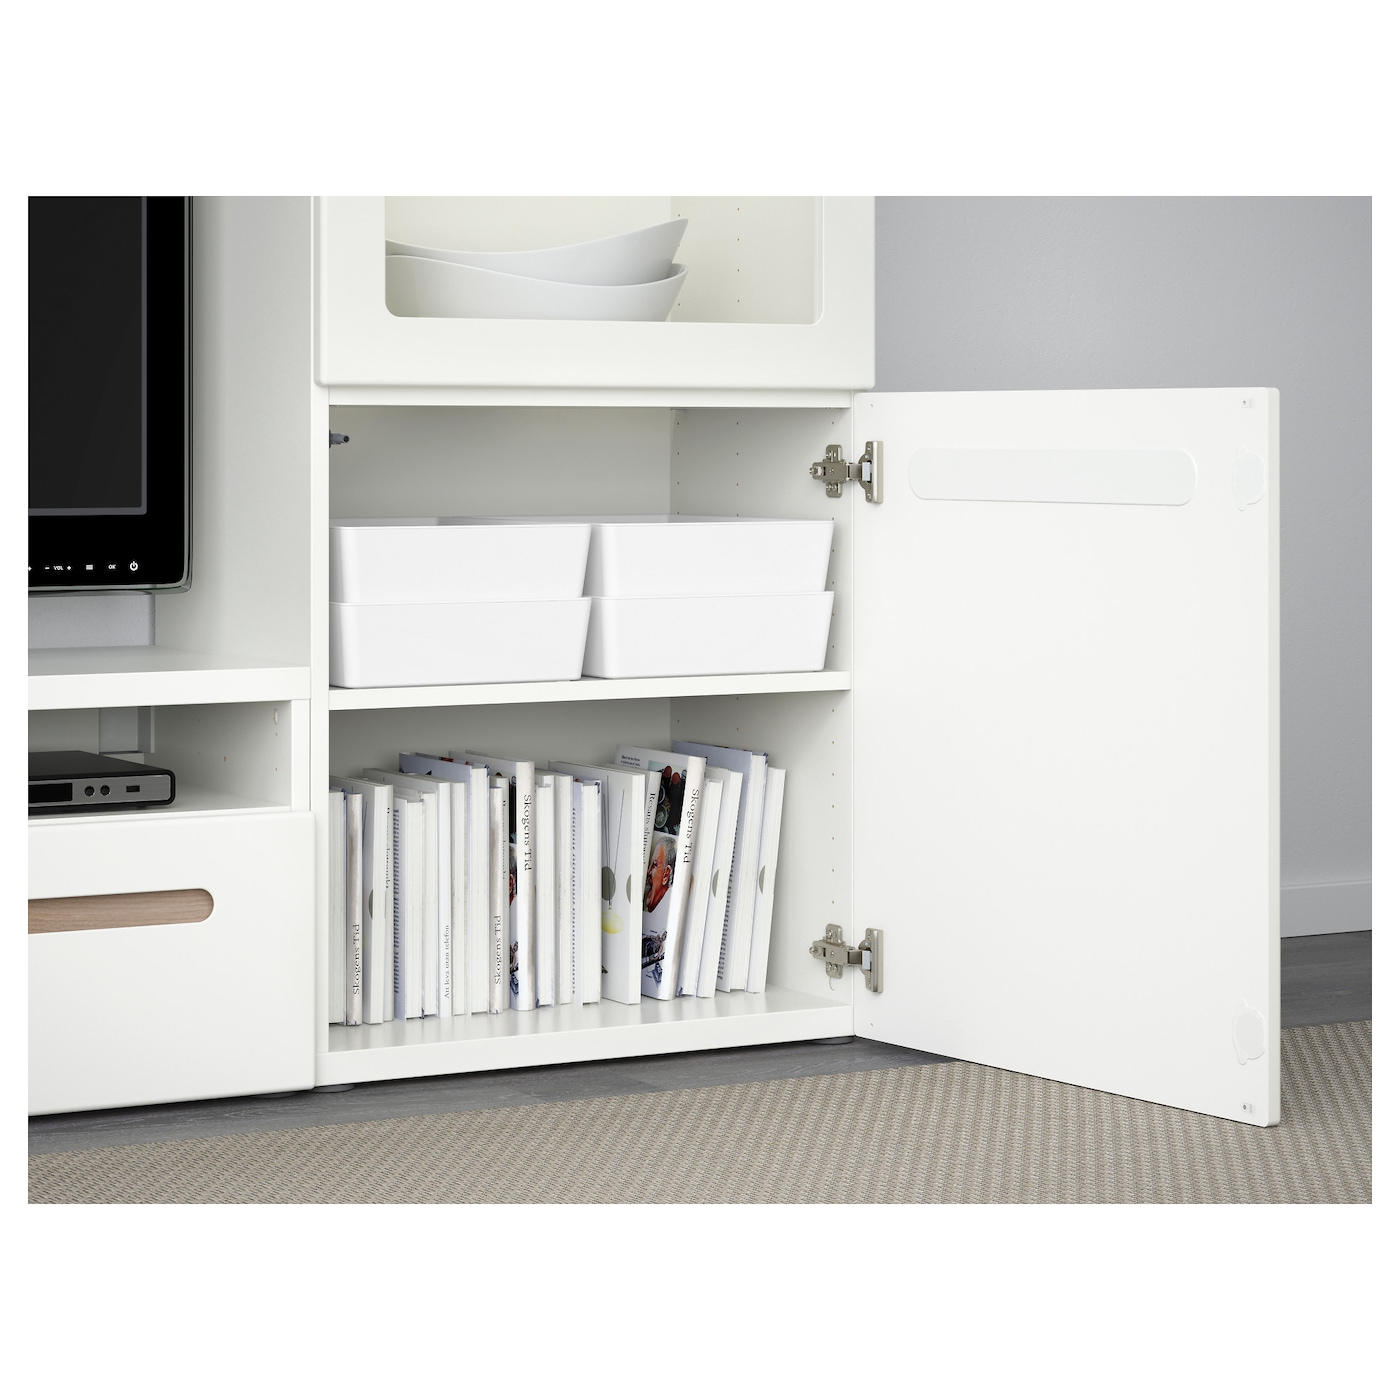 IKEA KUGGIS box with lid Perfect for storing paper, stationery or media accessories.